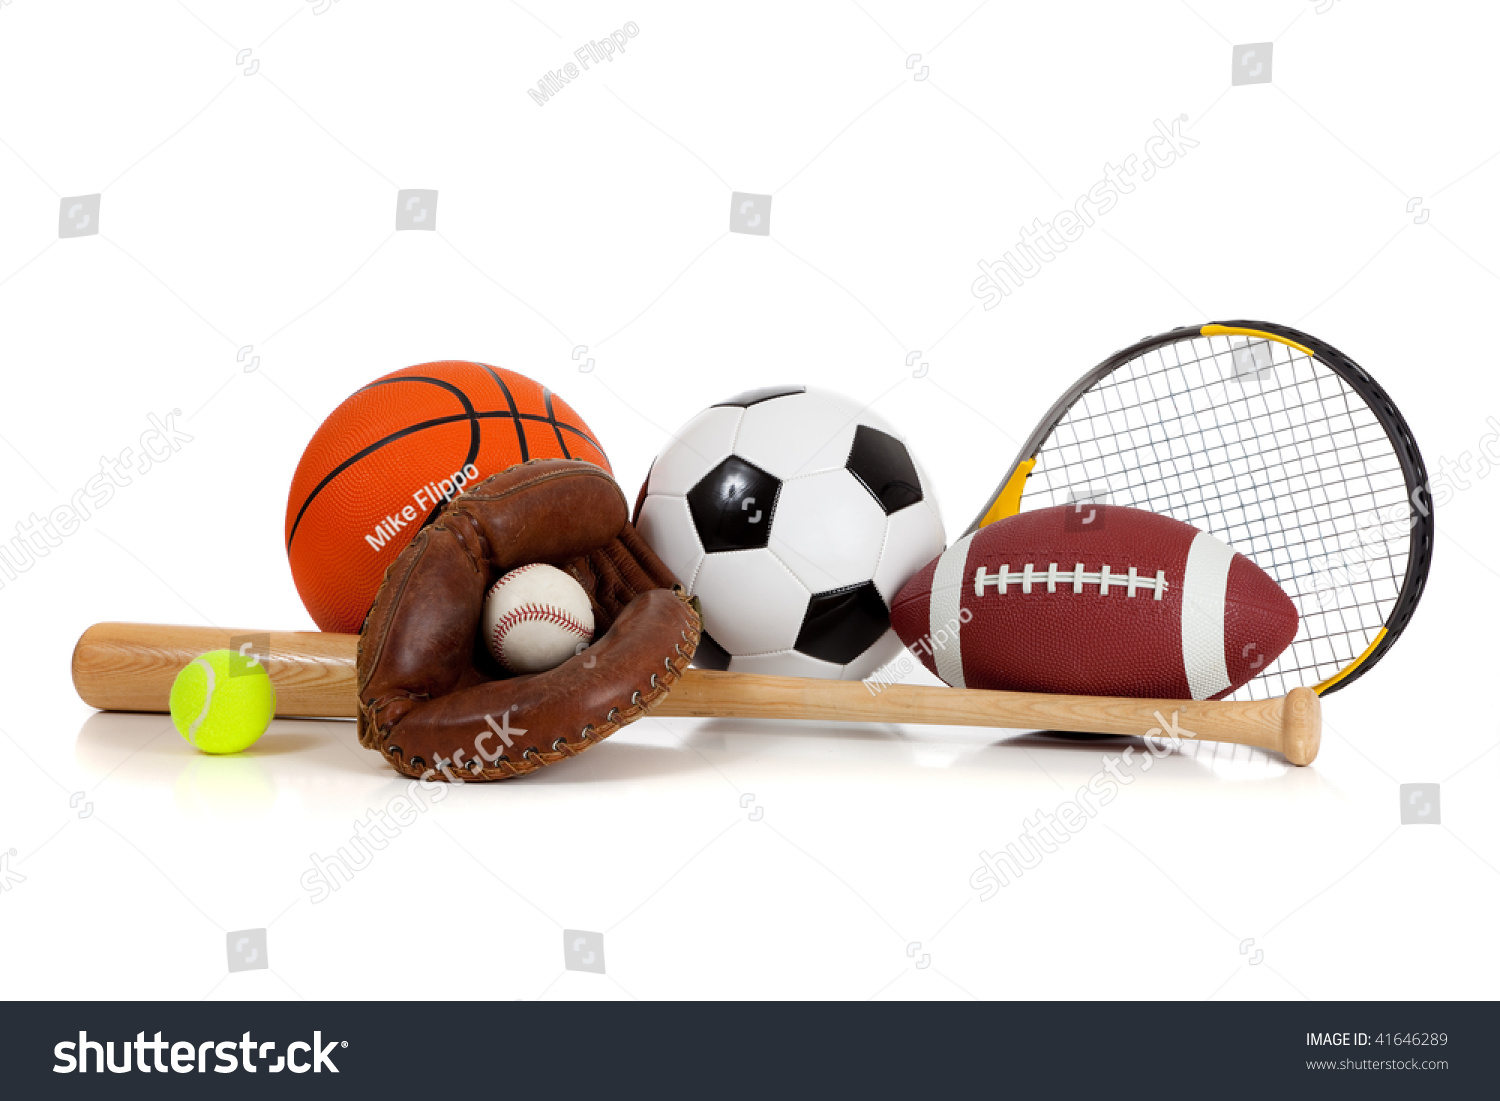 Color Sport Background Football Basketball Hockey Stock: Assorted Sports Equipment Including A Basketball, Soccer